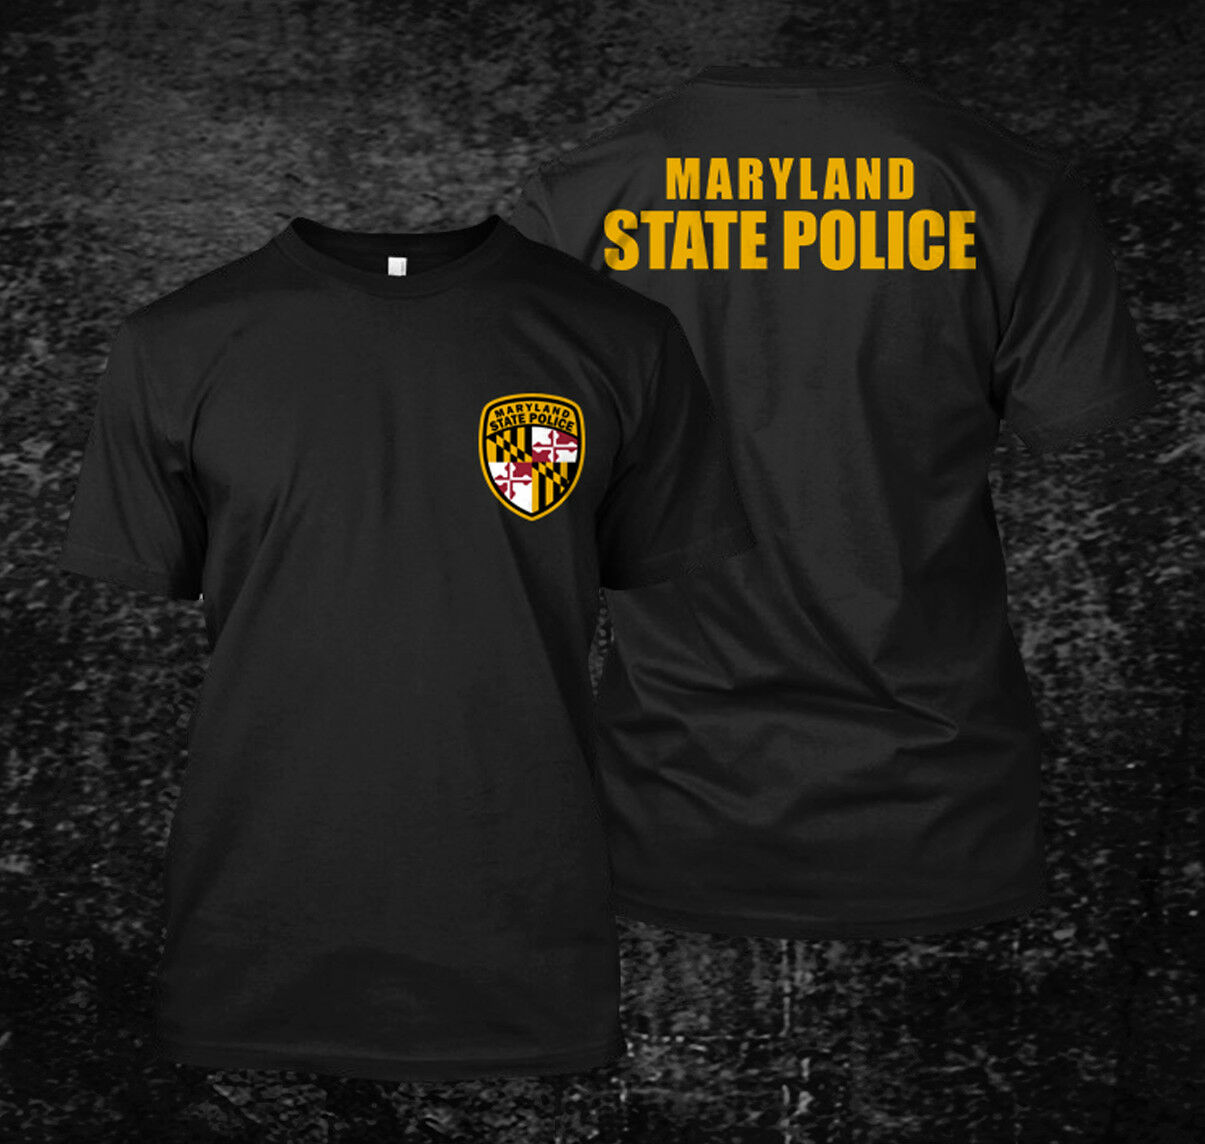 2019 Funny Maryland State Police - Custom Men'S Black T-Shirt Tee Double Side Unisex Tee